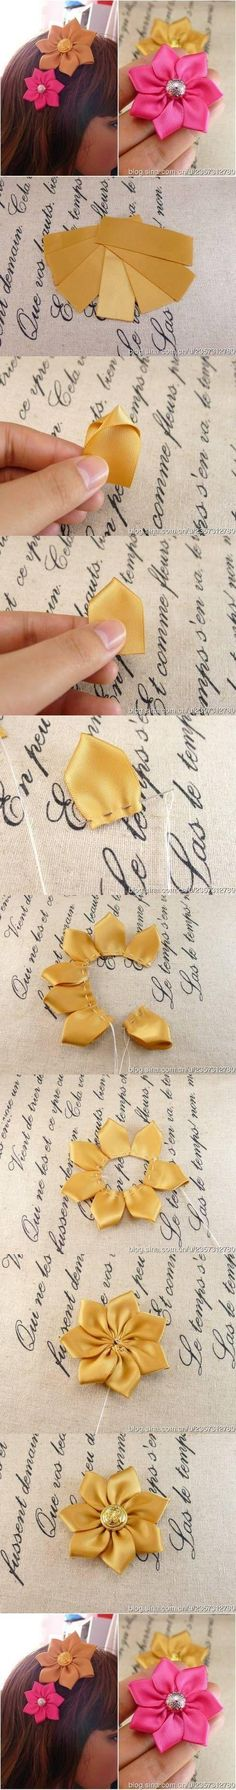 DIY Tutorial DIY Ribbon Crafts / DIY Handmade Ribbon Flowers - Bead&Cord